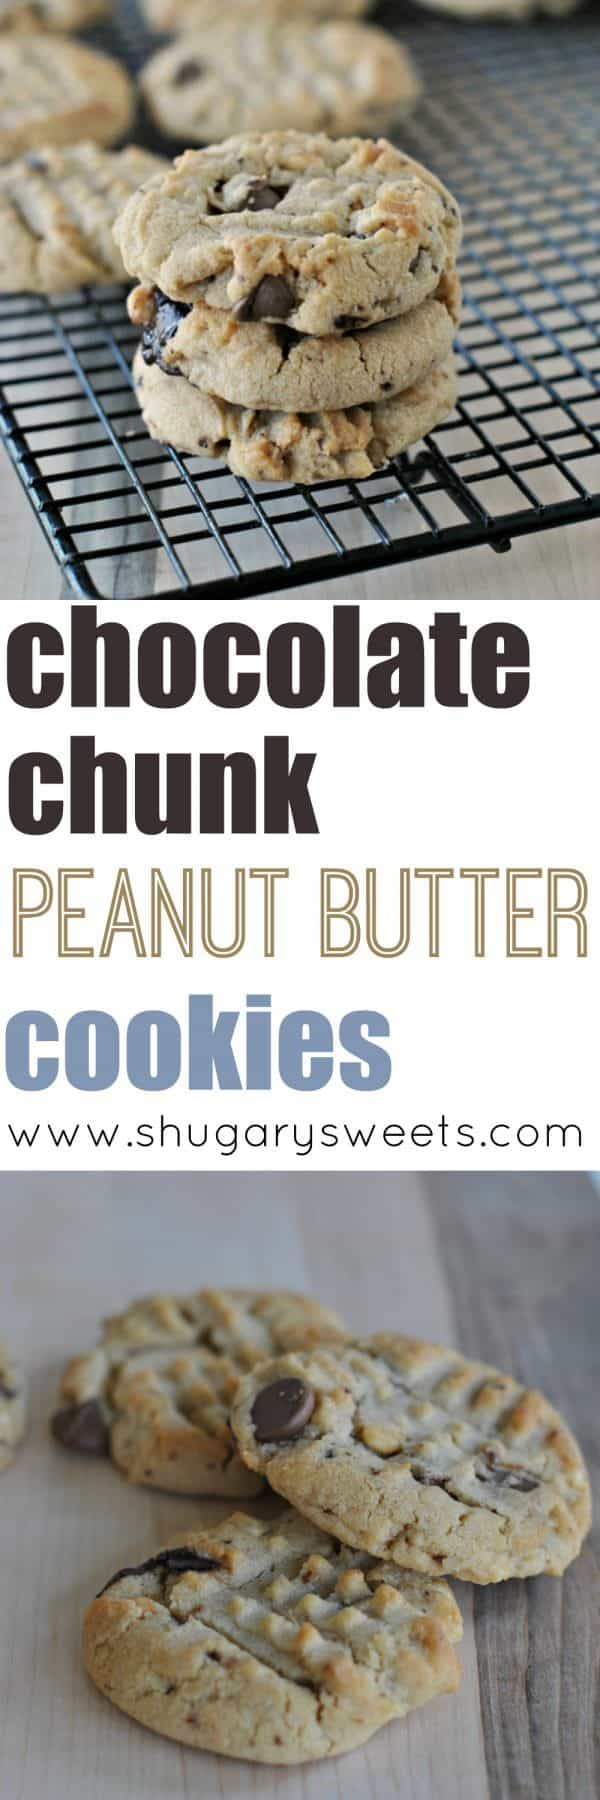 Chunky Peanut Butter cookie recipe filled with Chocolate Chunks! Time to indulge on some delicious cookies!